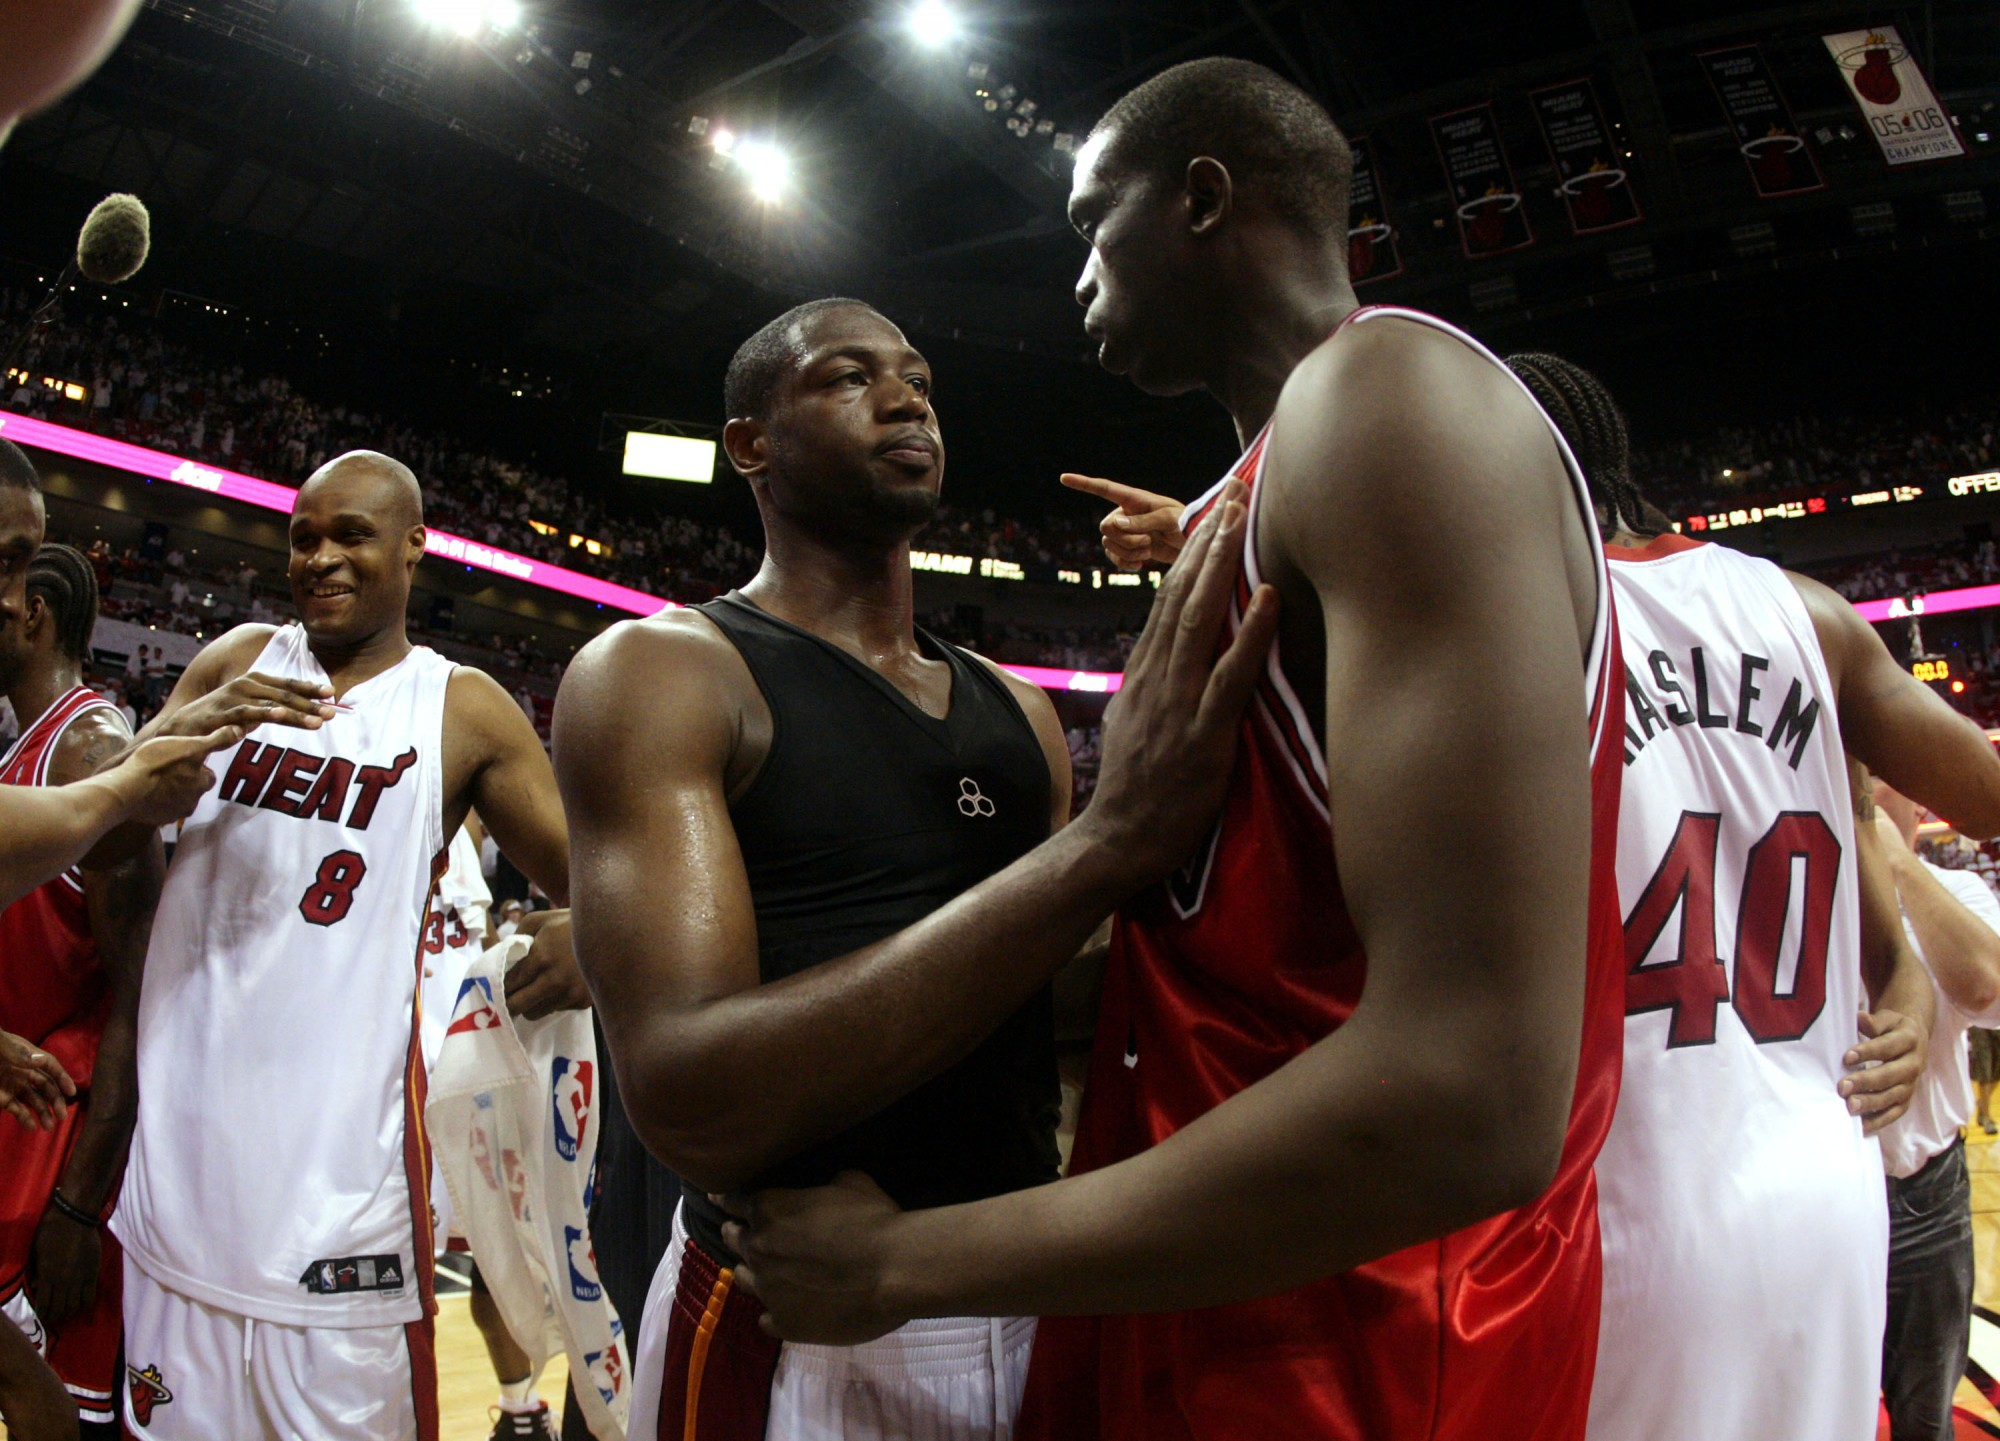 Luol Deng on the up ing NBA season with Miami Heat